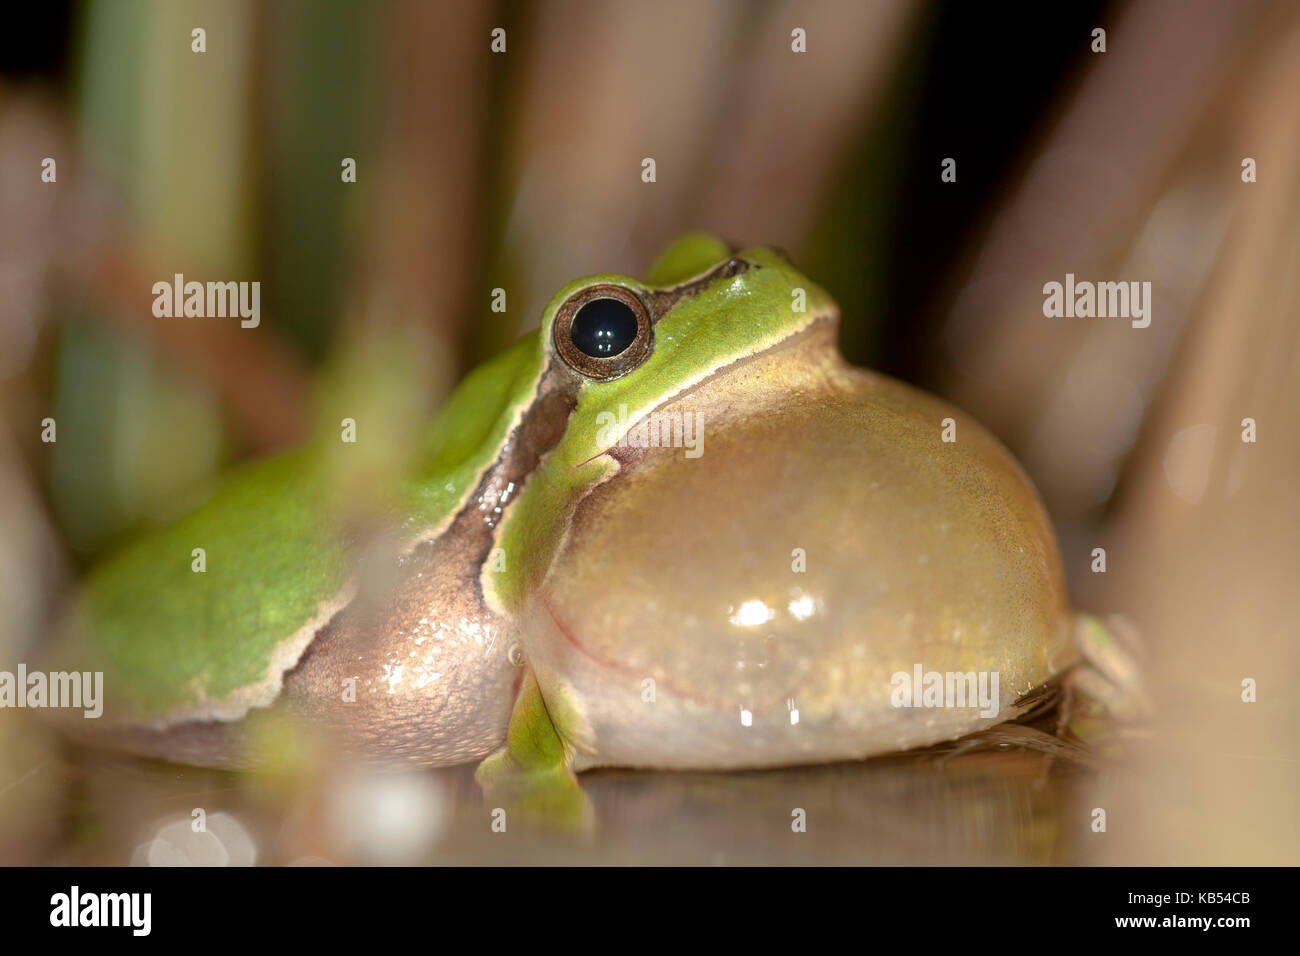 European Tree Frog (Hyla arborea) croaking in shallow water, The Netherlands - Stock Image